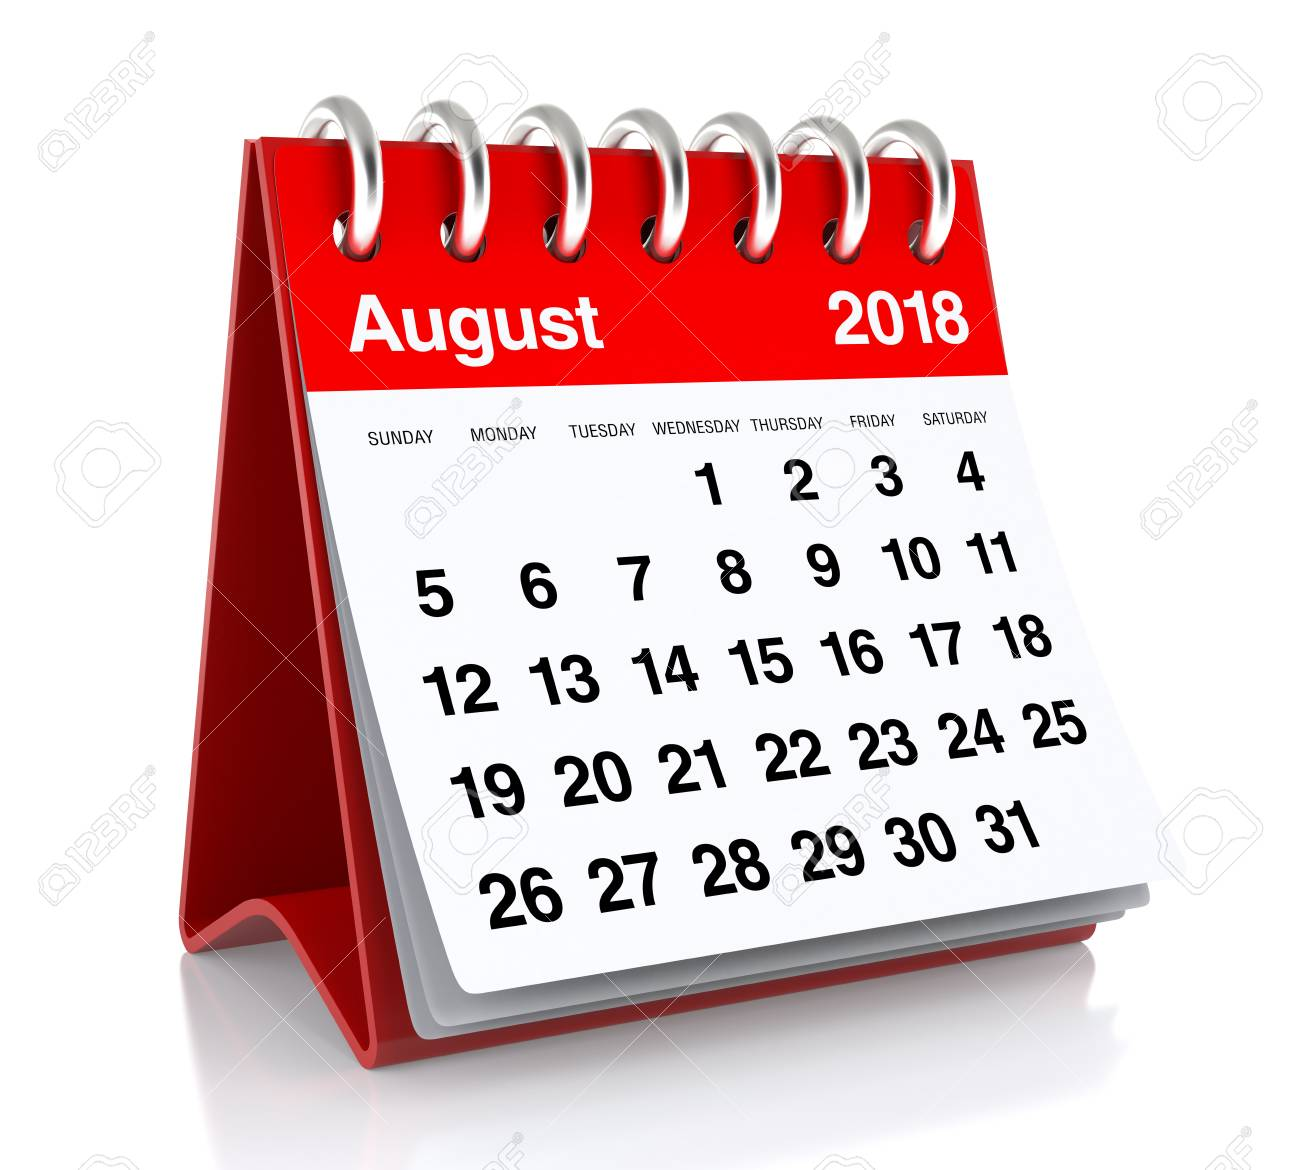 August 2018 Calendar » Clipart Station.